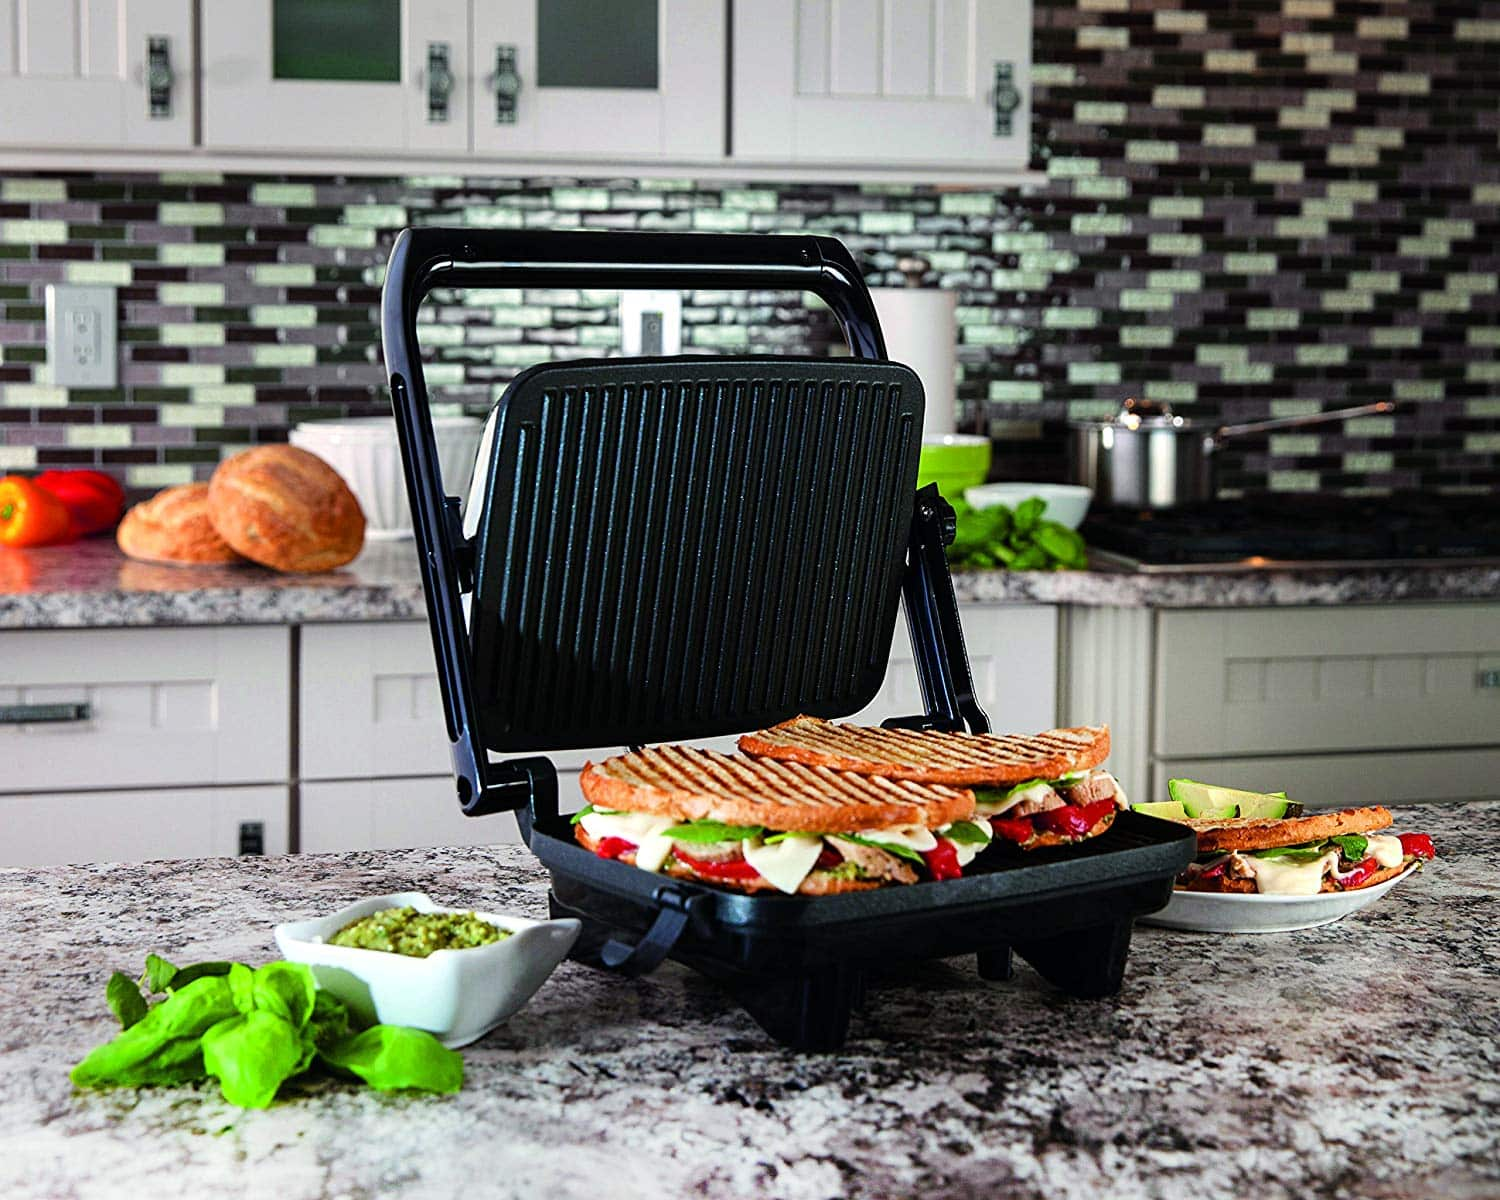 Top 10 Best Griddlers in 2020 Reviews | Stainless Steel Griddlers